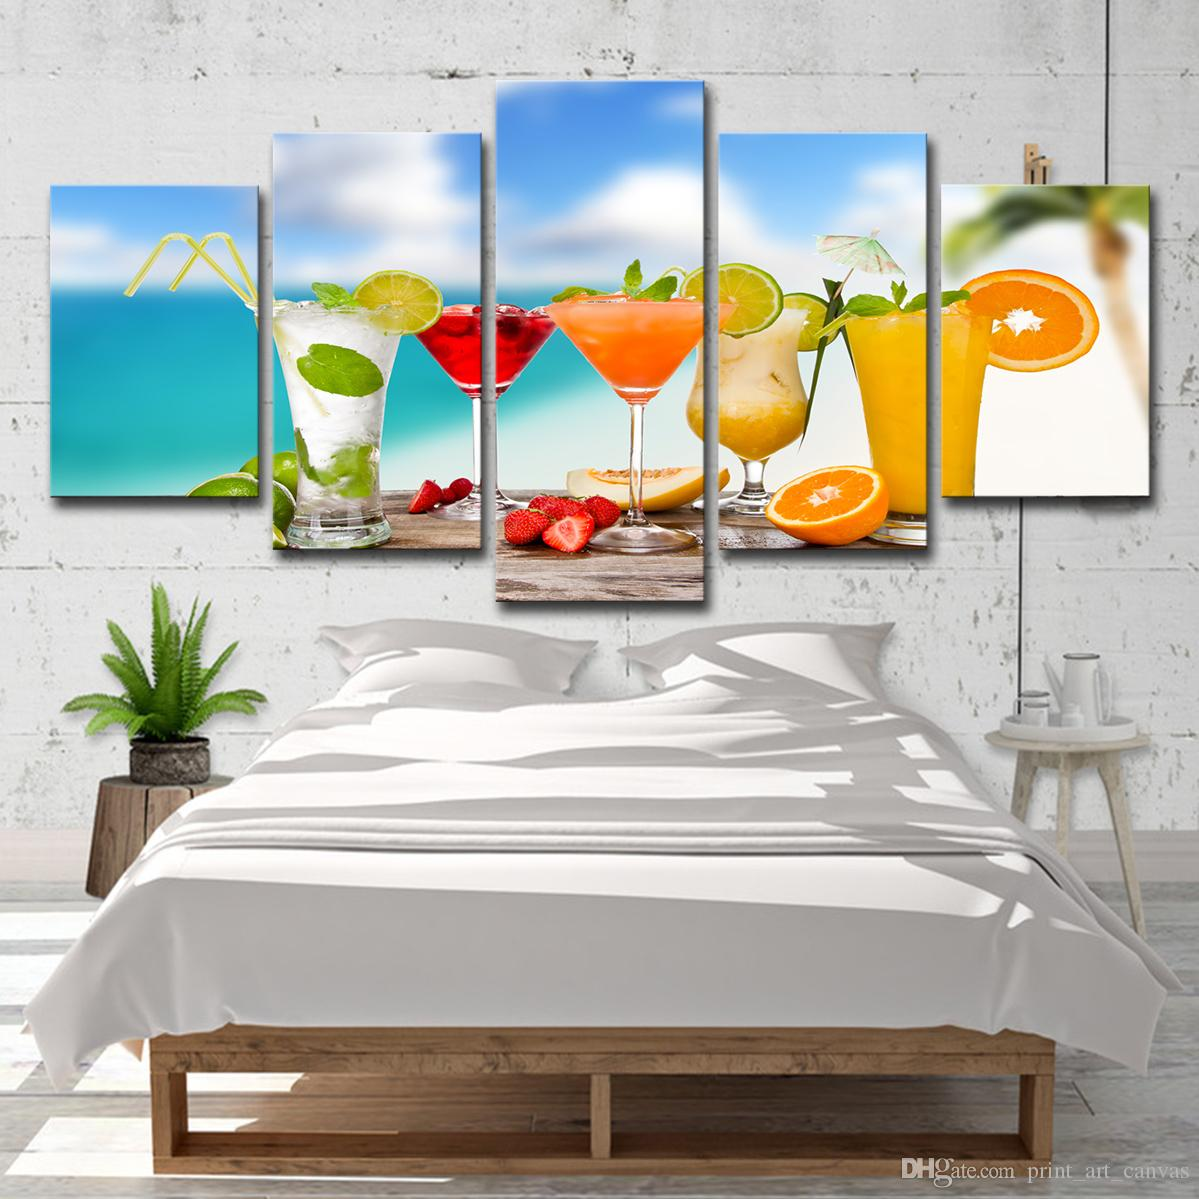 2019 Wall Art Canvas Hd Prints Painting Kitchen Restaurant Decor Fruit Drink Poster Beach Cocktails Cup Pictures From Printartcanvas 1641